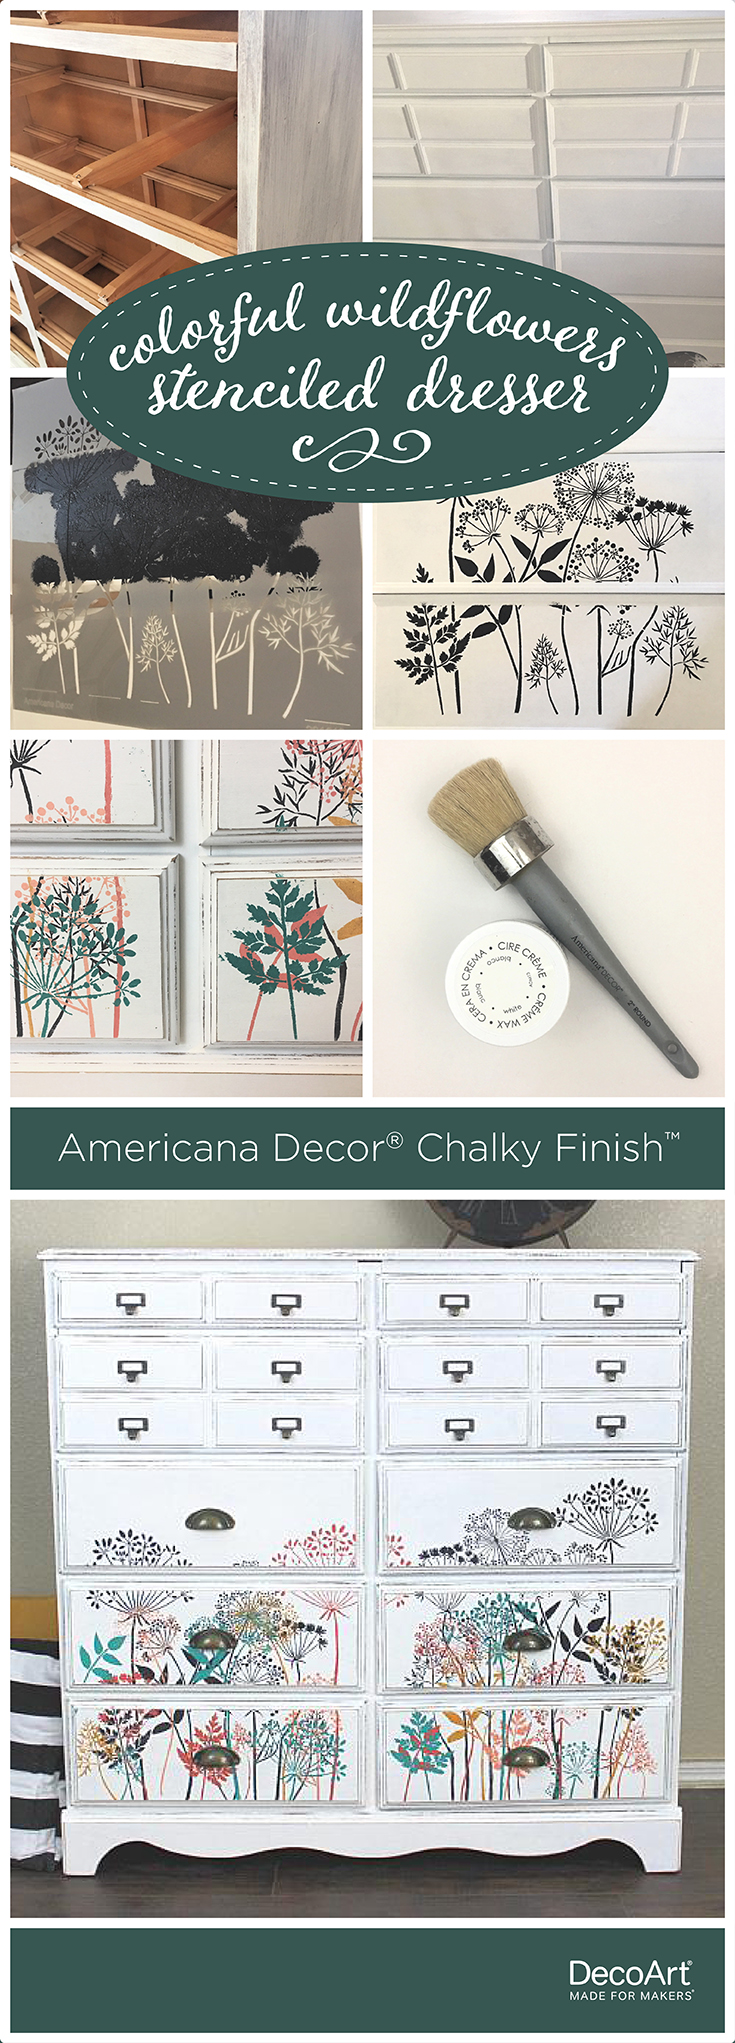 Colorful Wildflowers Stenciled Dresser